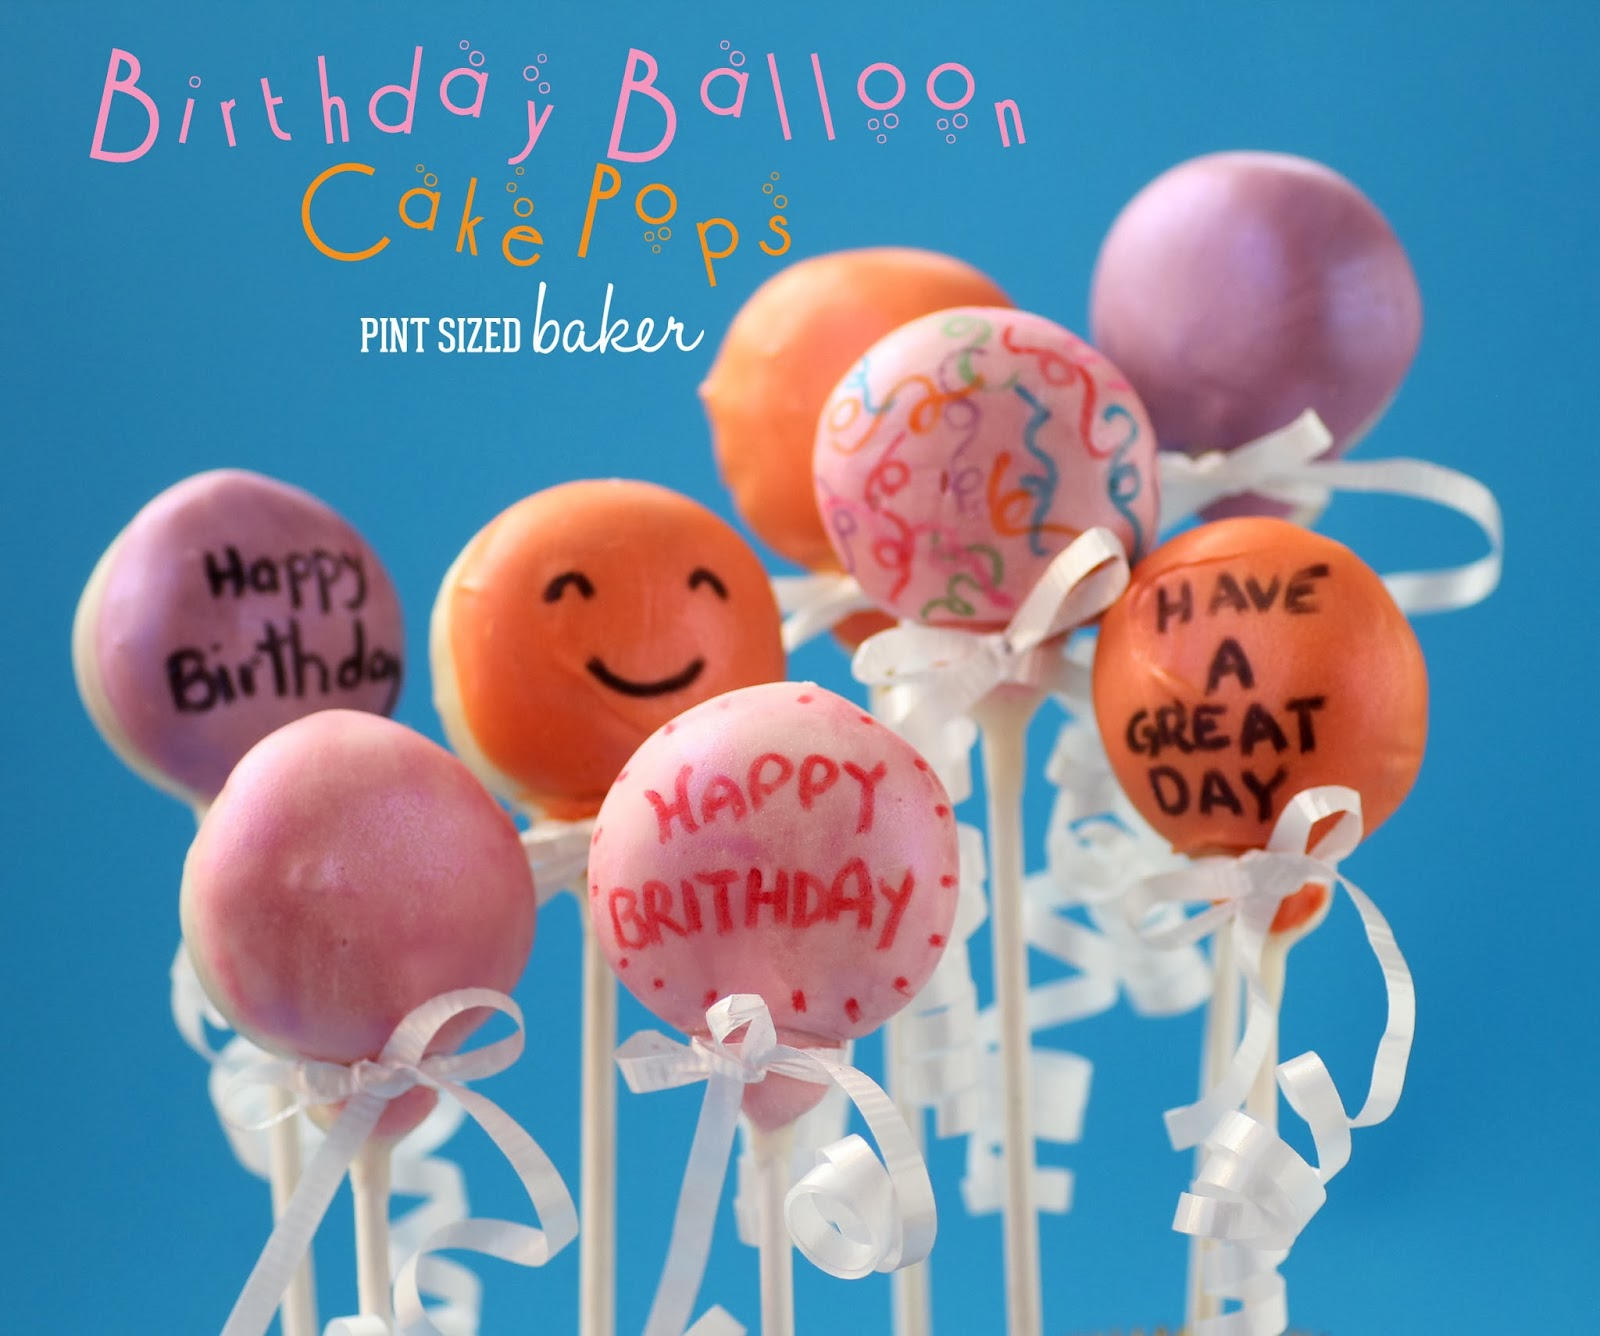 Happy Birthday Balloon Cake Pops